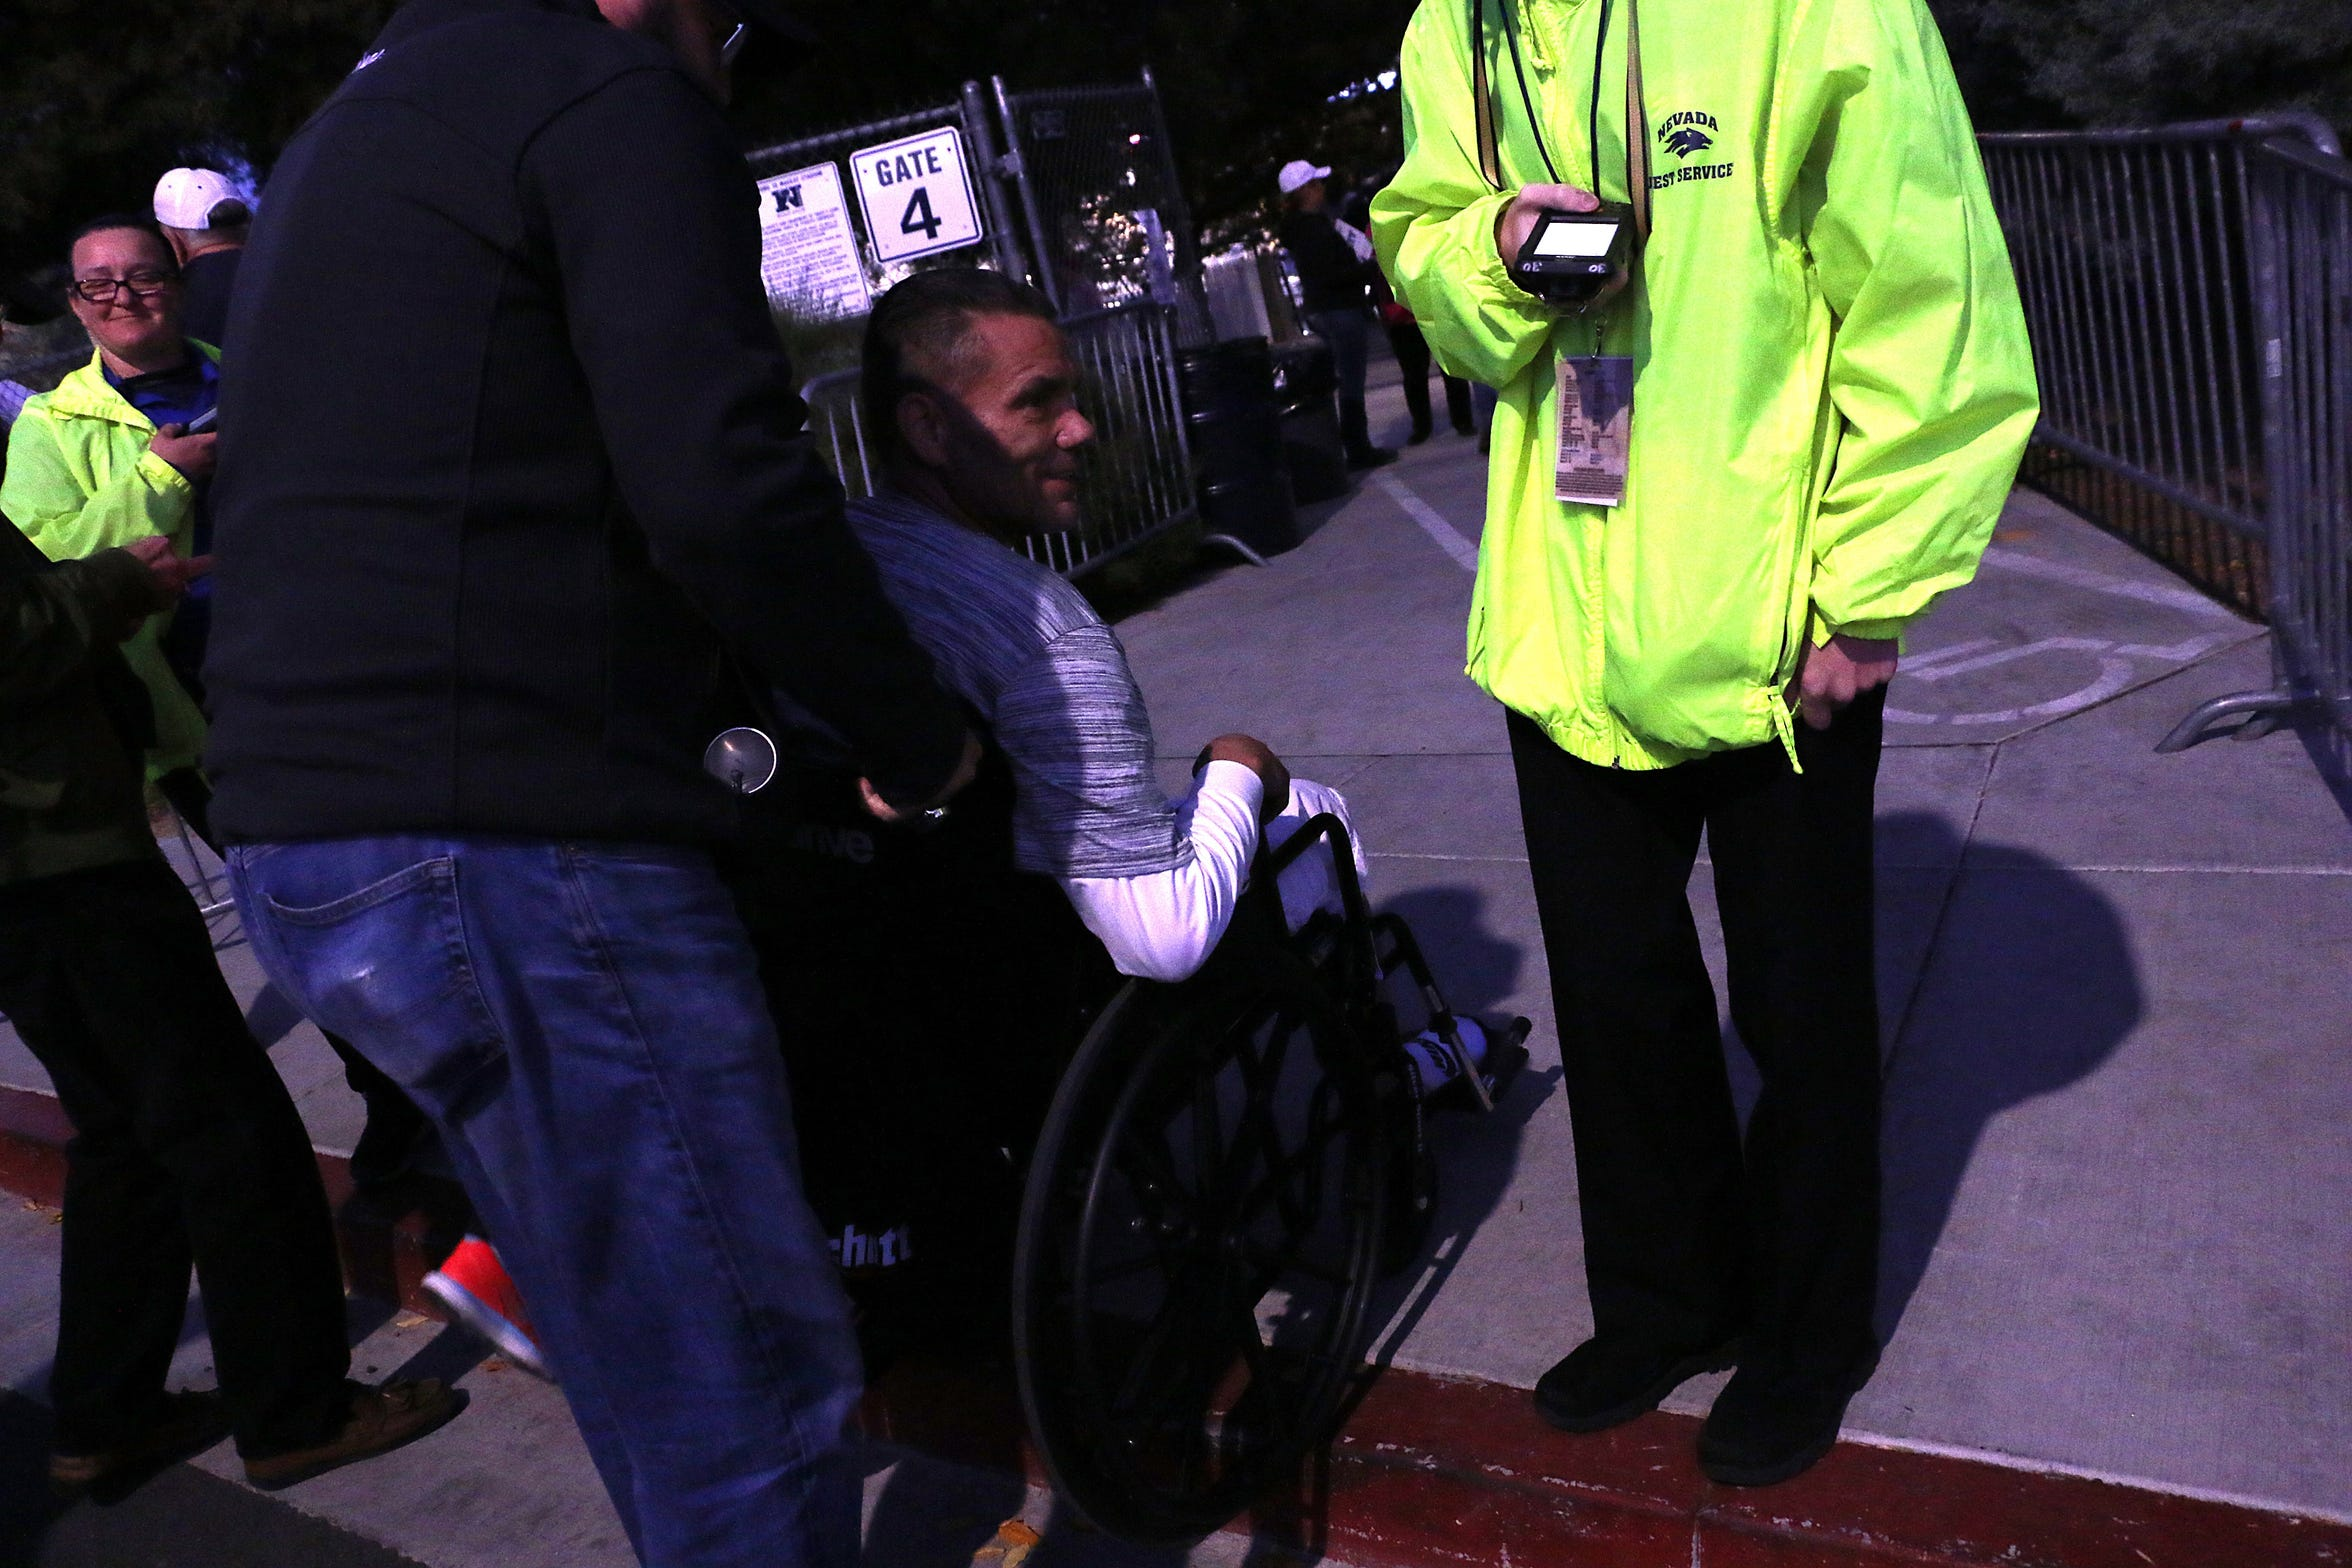 Former Nevada Wolf Pack player Ross Ortega wheelchair tries to access Mackay Stadium in Reno on Oct. 13, 2018.